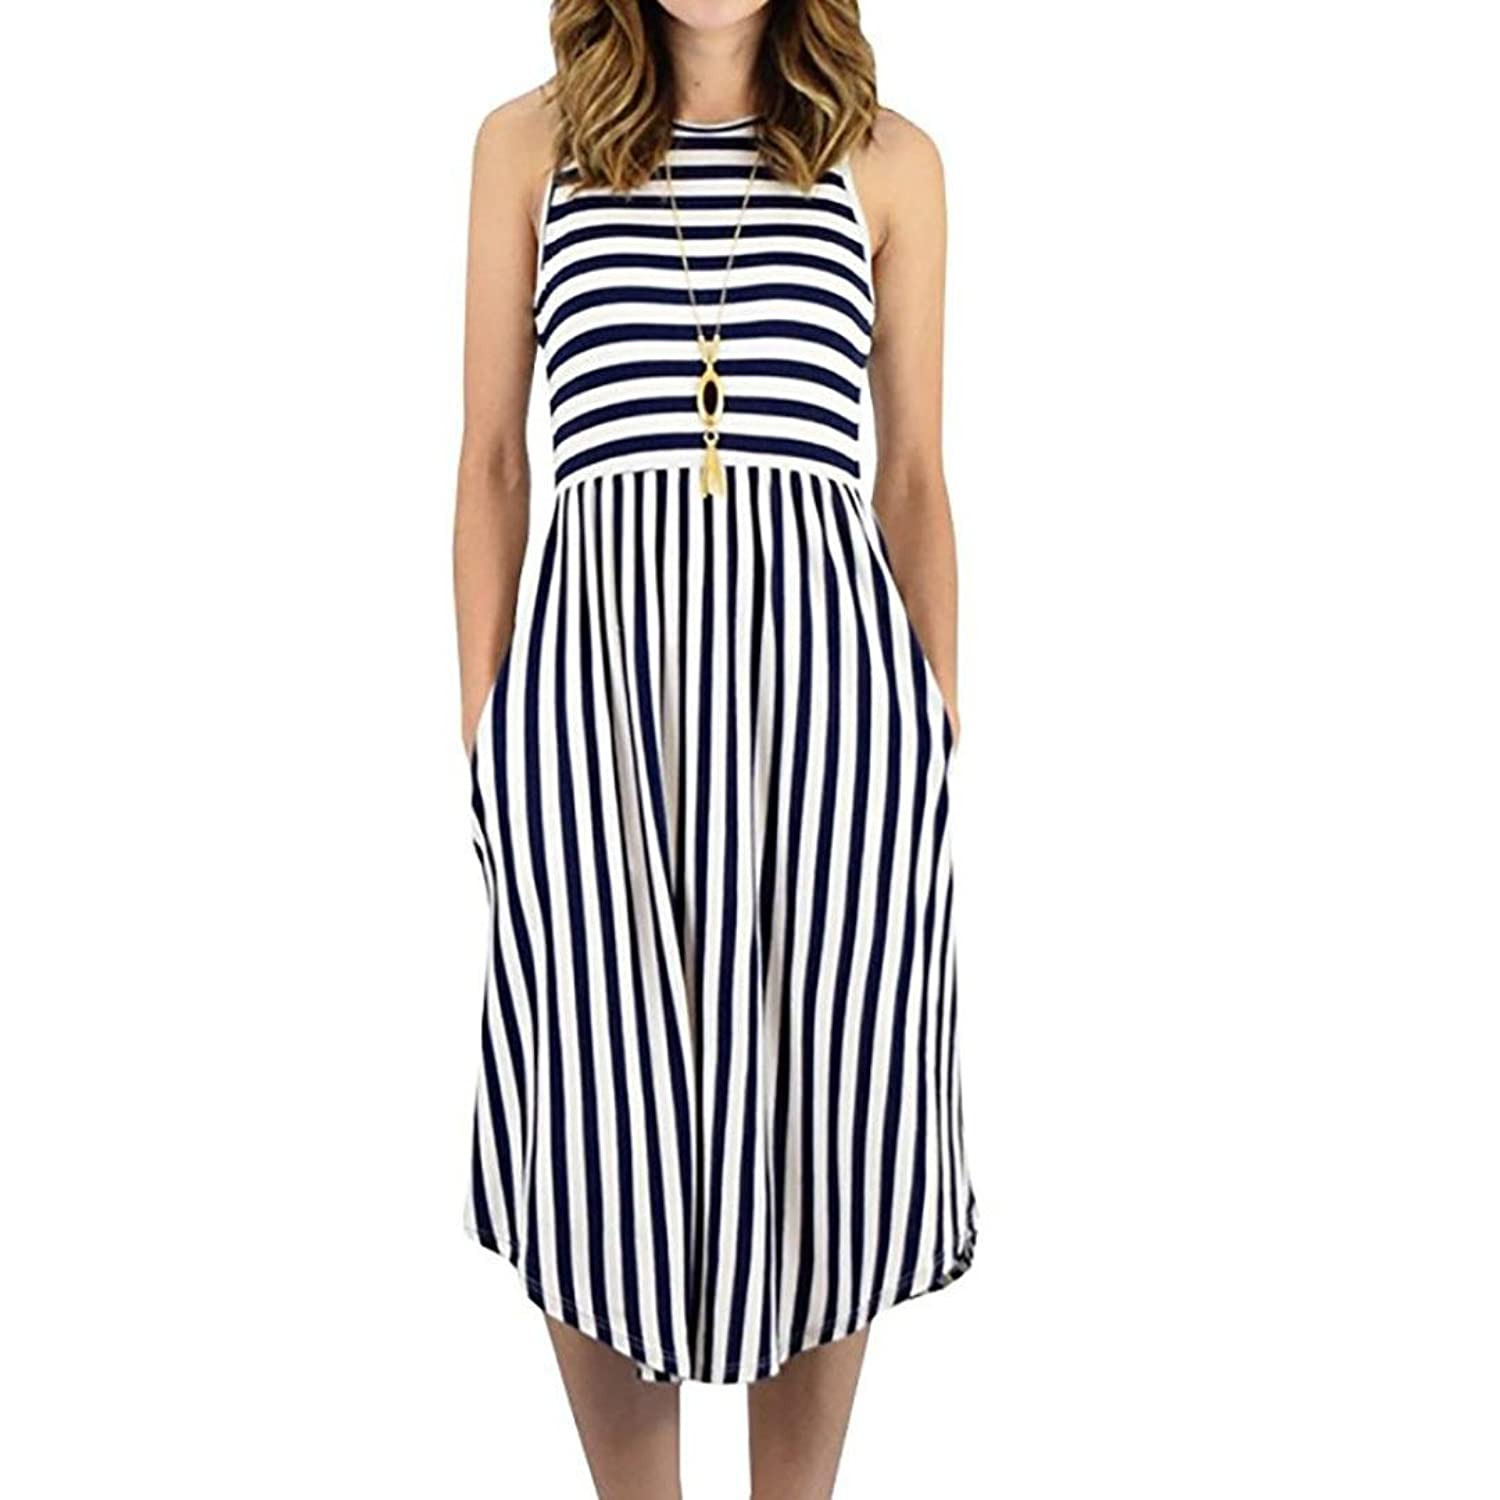 e852e08051b2b Top9: NEWONESUN 2018 Womens Dress Striped Sleeveless Casual Summer Beach  Midi Dresses with Pockets Dress